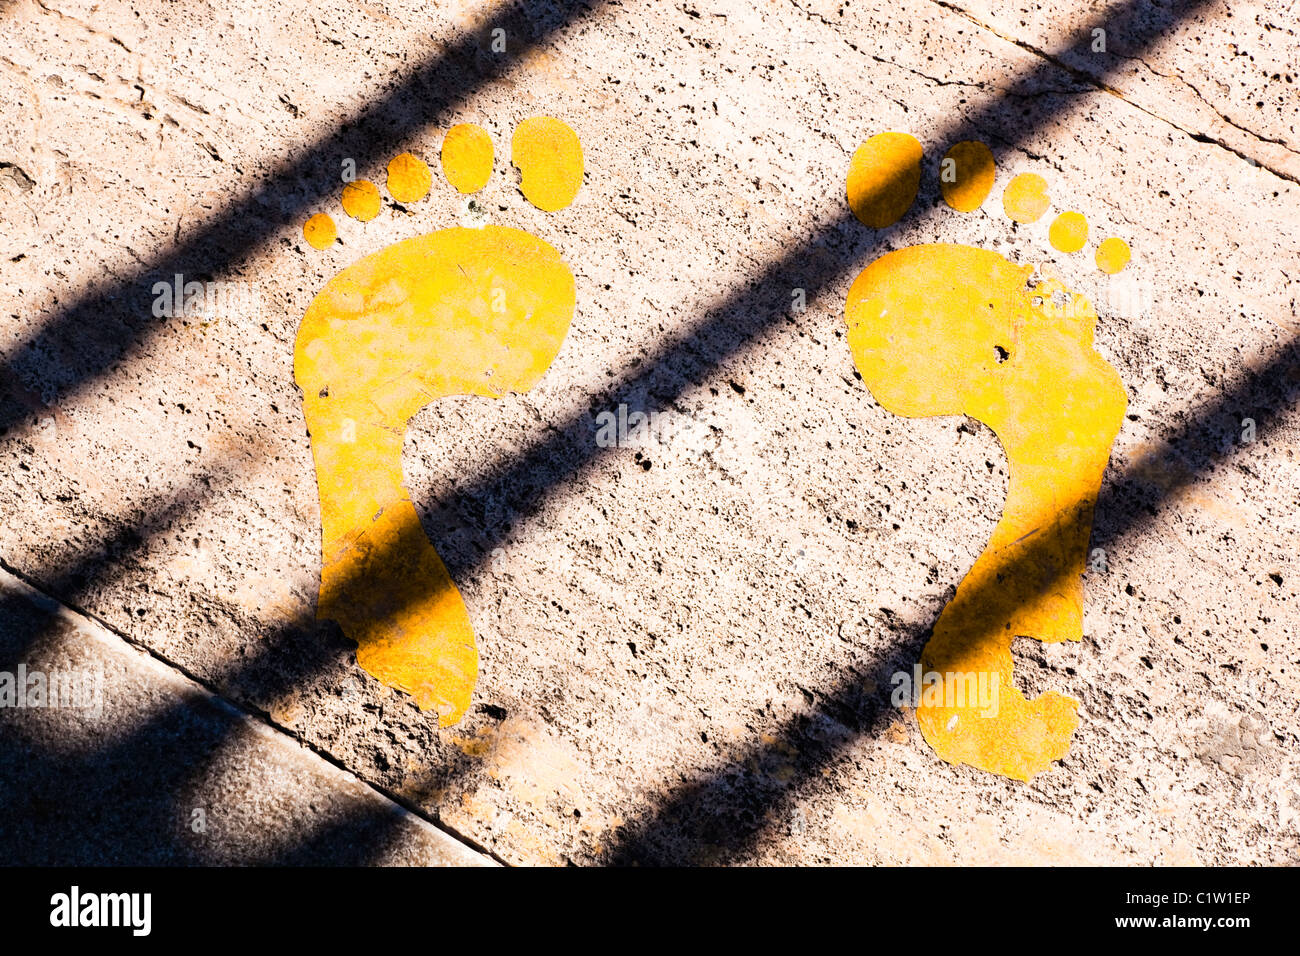 Yellow painted footprints in pavement with shadow of bars across them. - Stock Image